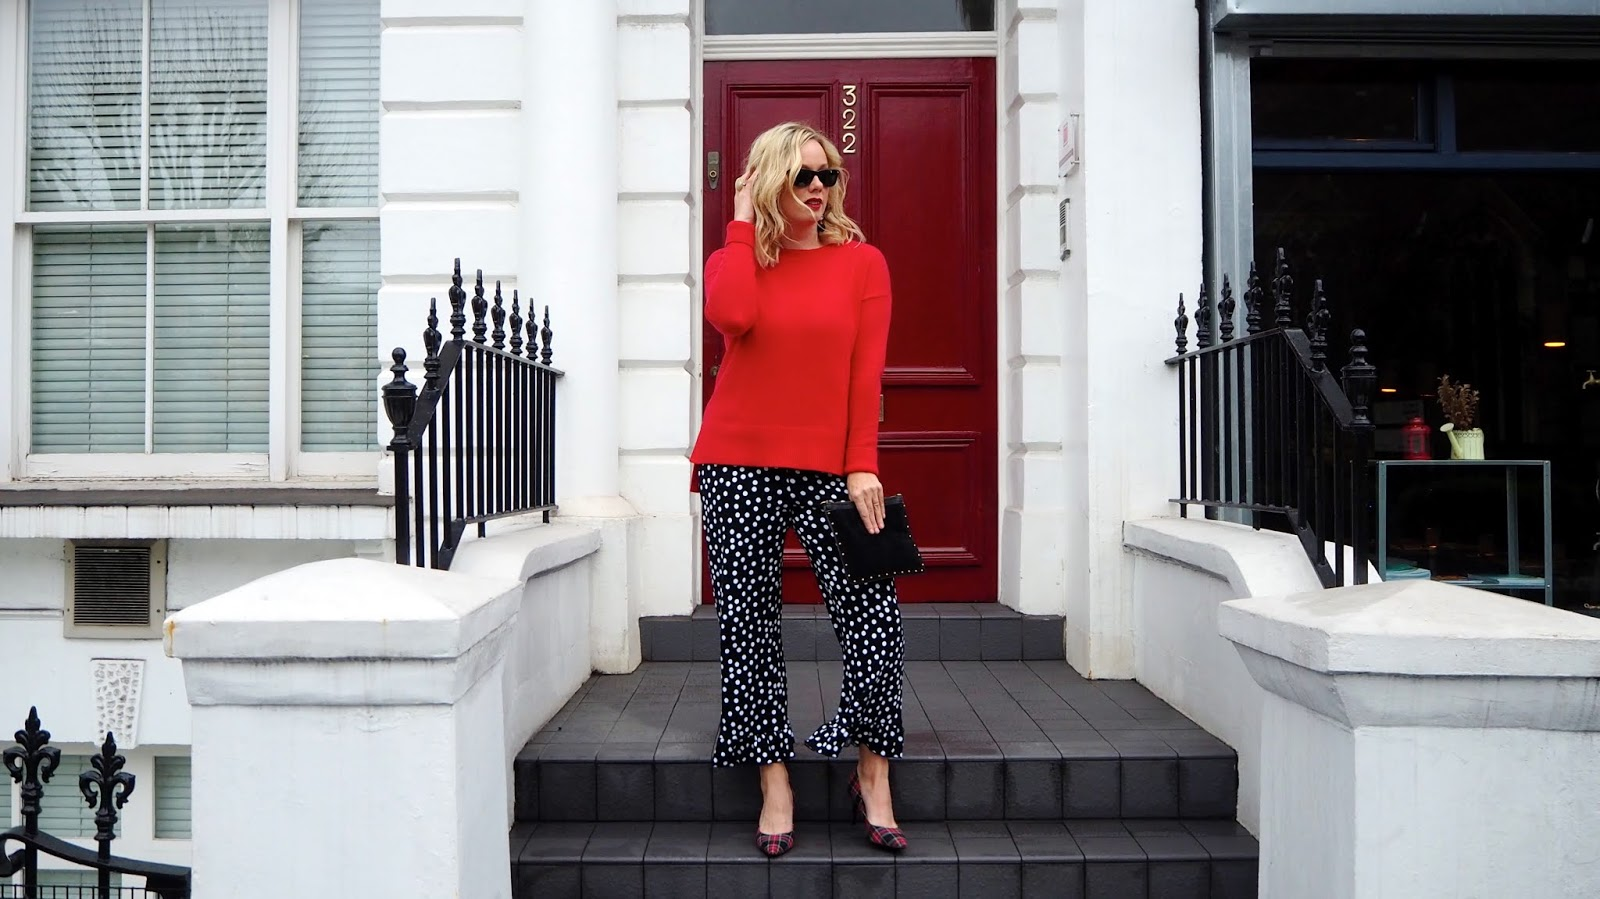 Ruffle hemmed black and white polka dot trousers, red plaid high heels, red sweater and black rayban wayfarer sunglasses